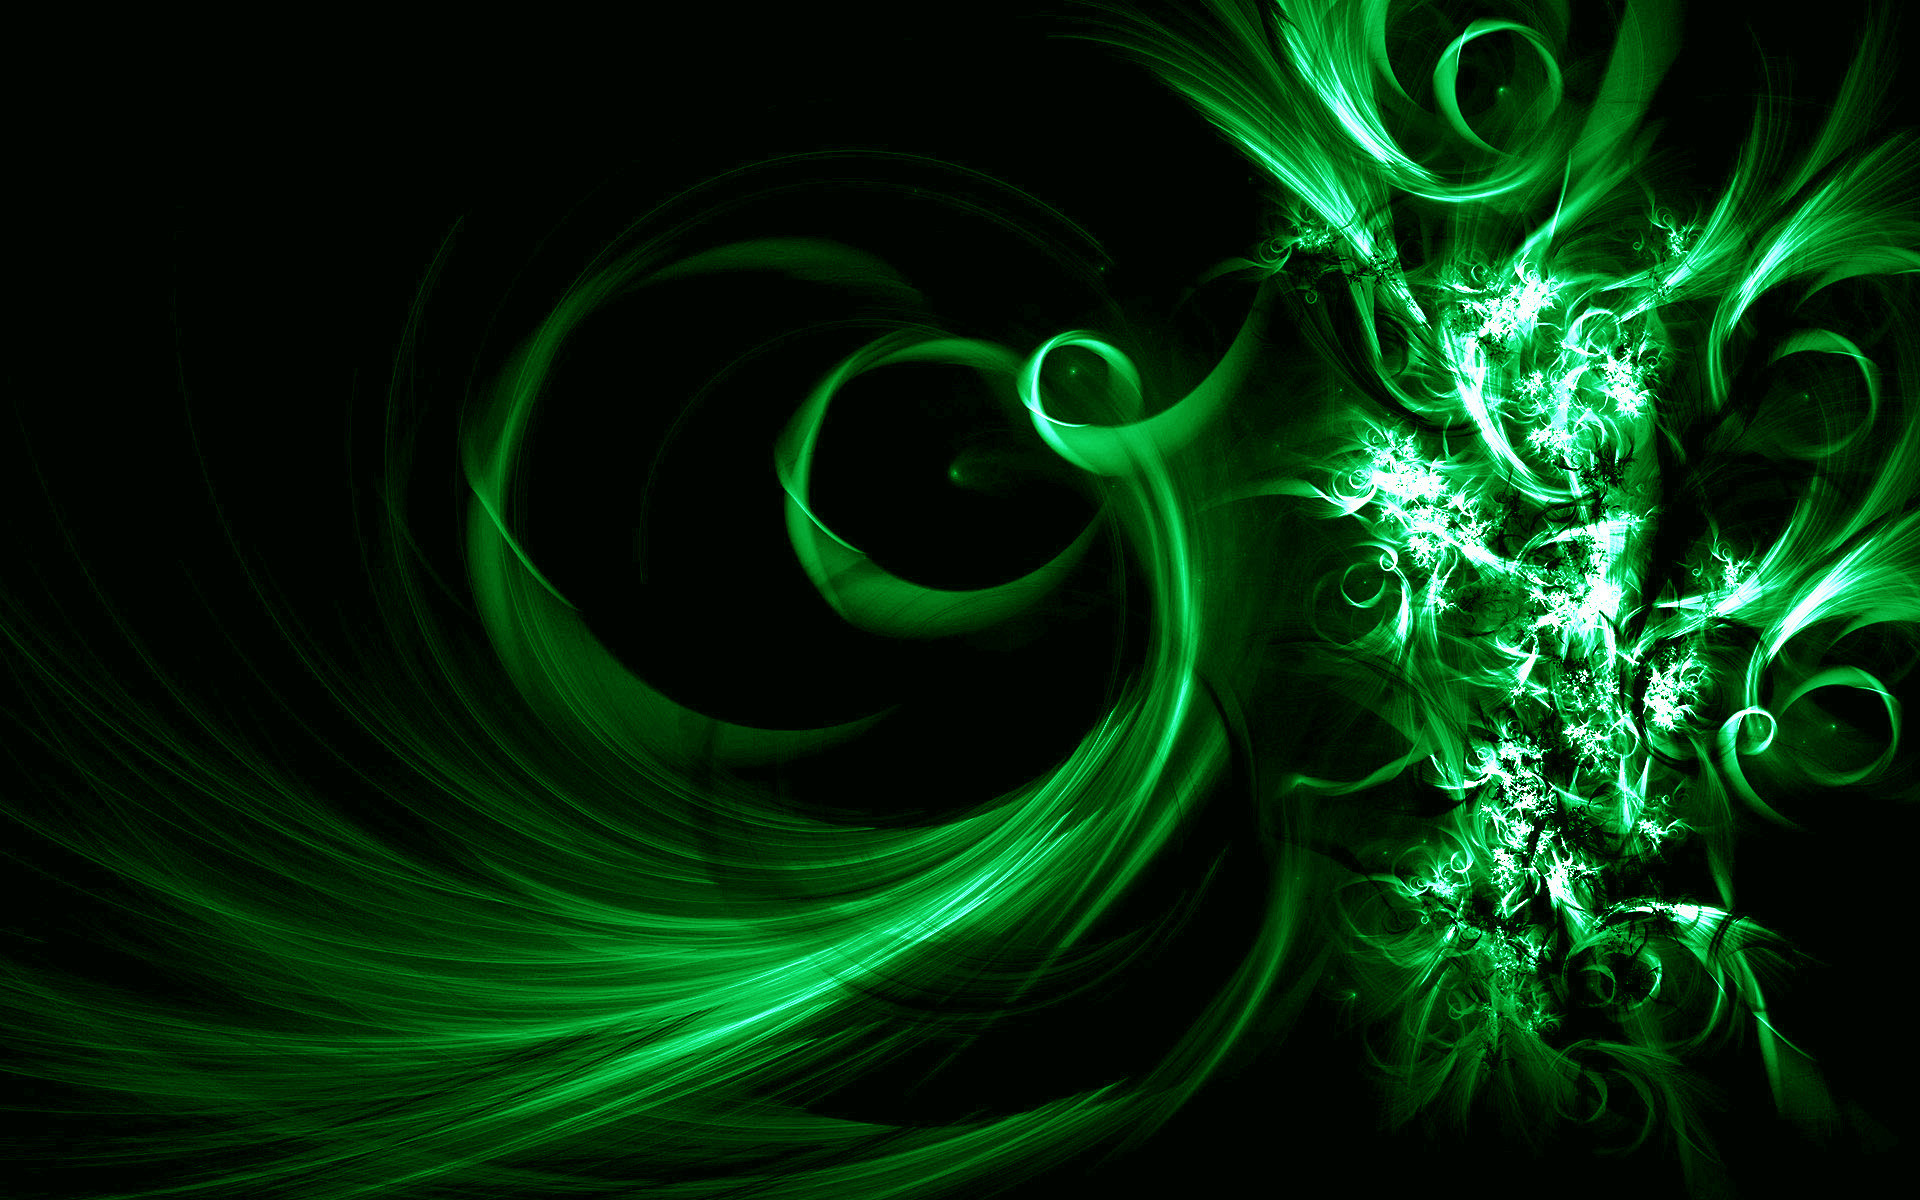 1920x1200 Image Description: This is Black and Green Vector Abstract Desktop Wallpaper  in Buubi.com